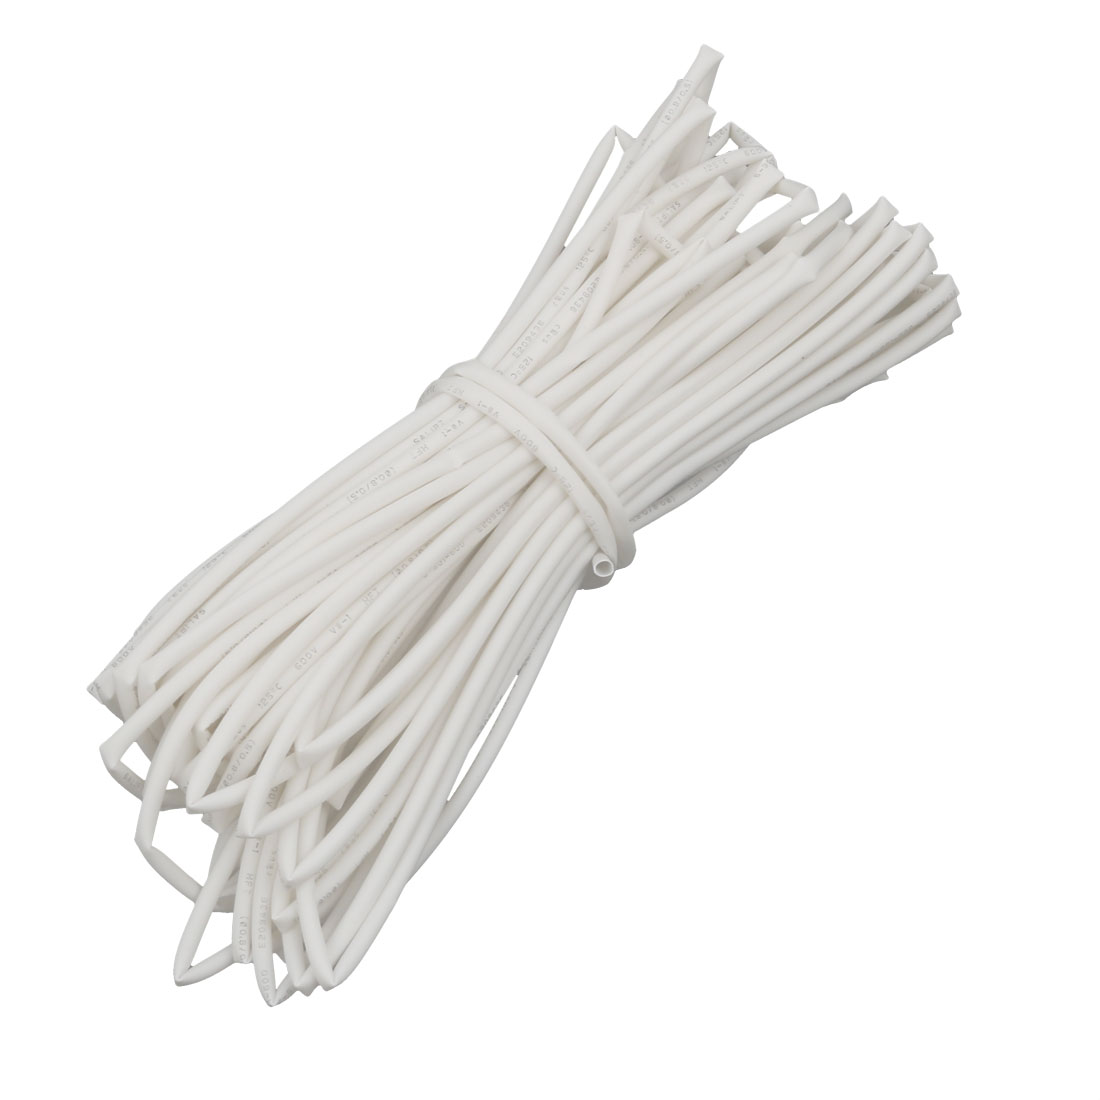 32.8Ft Length 0.8mm Inner Dia Insulated Heat Shrink Tube Sleeve Wire Wrap White